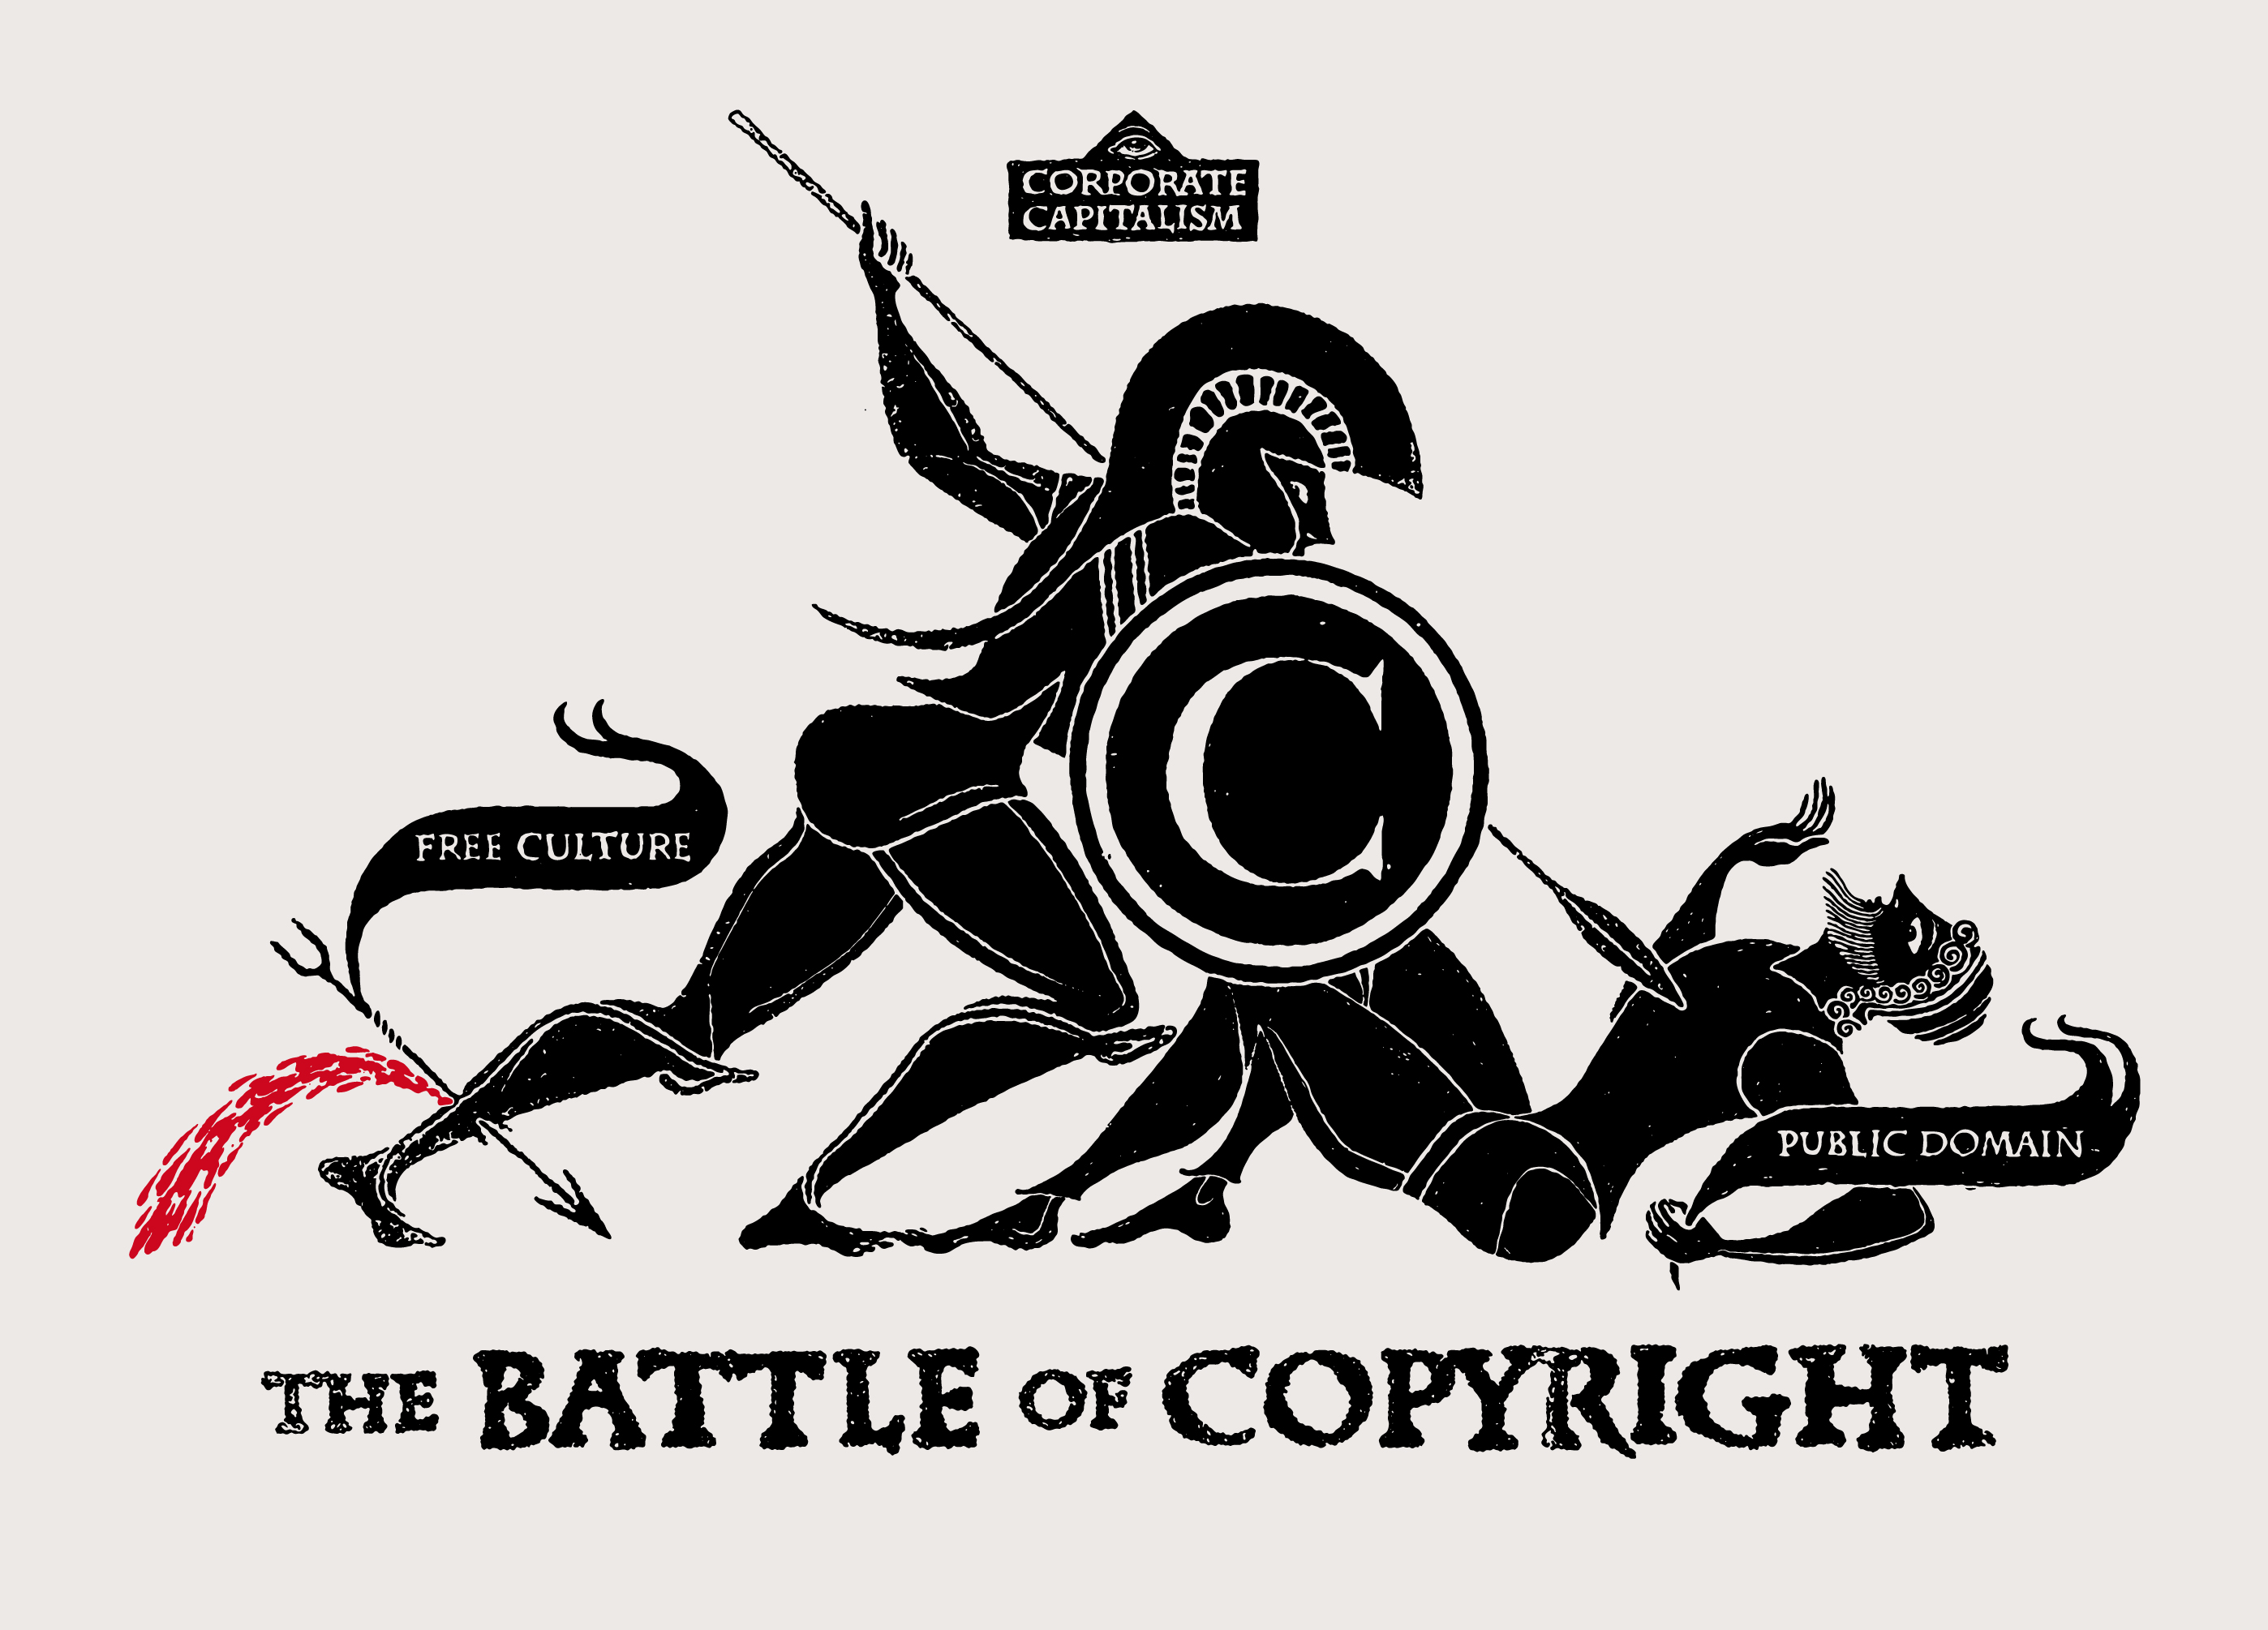 https://i2.wp.com/upload.wikimedia.org/wikipedia/commons/7/74/THE_BATTLE_OF_COPYRIGHT.jpg